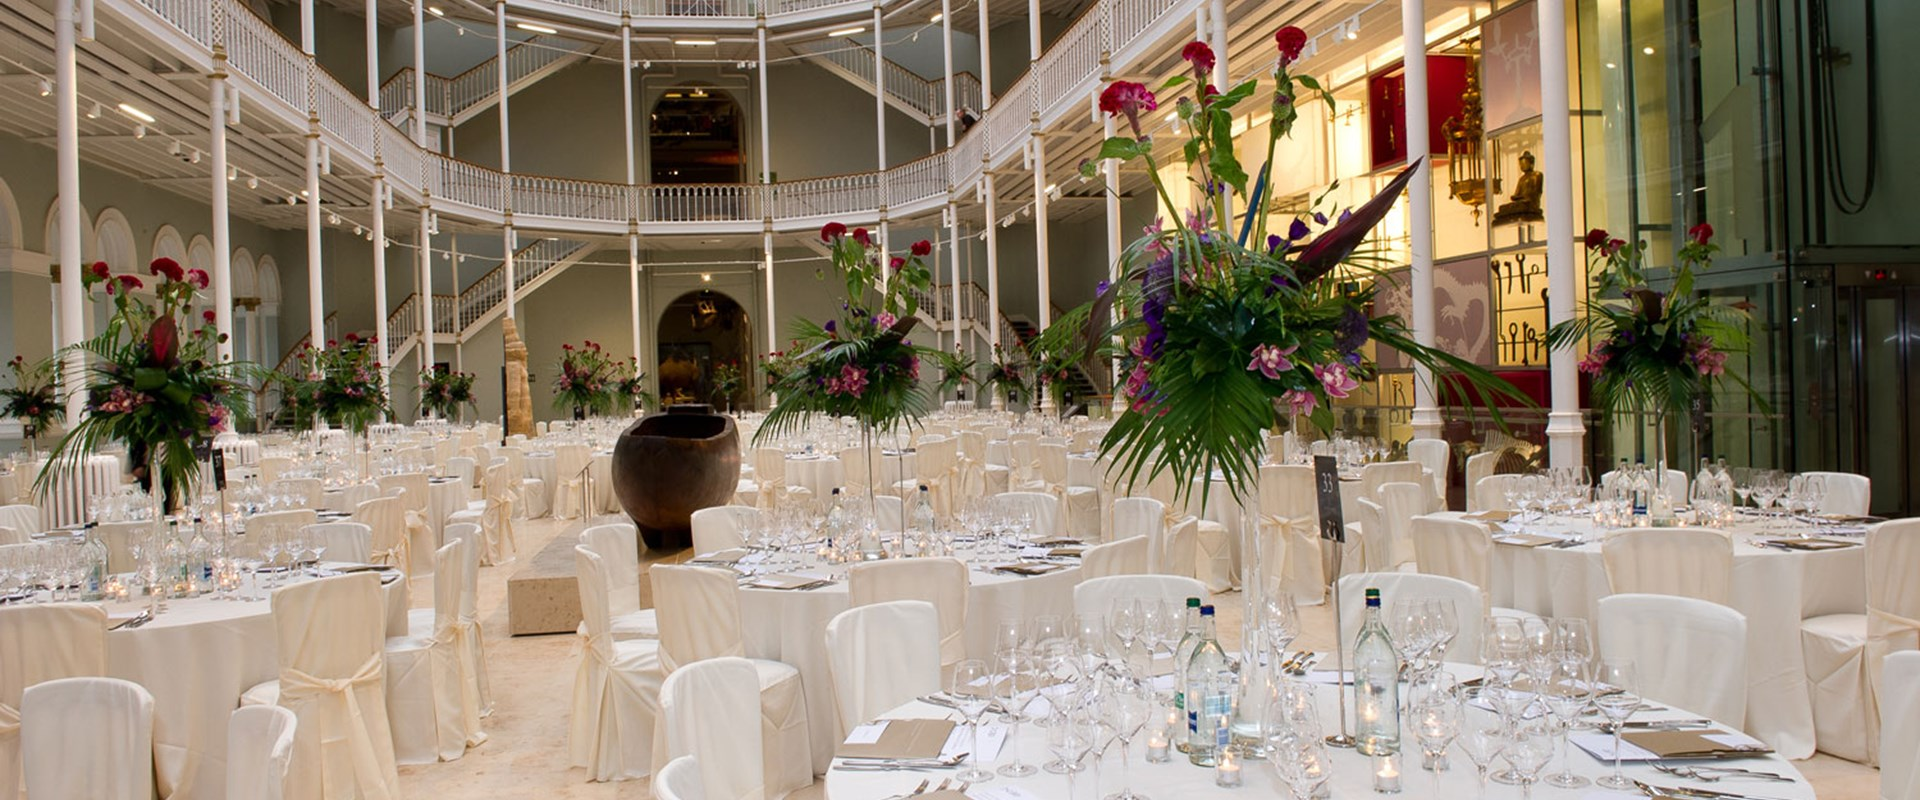 National museums scotland venue hire contacts junglespirit Choice Image